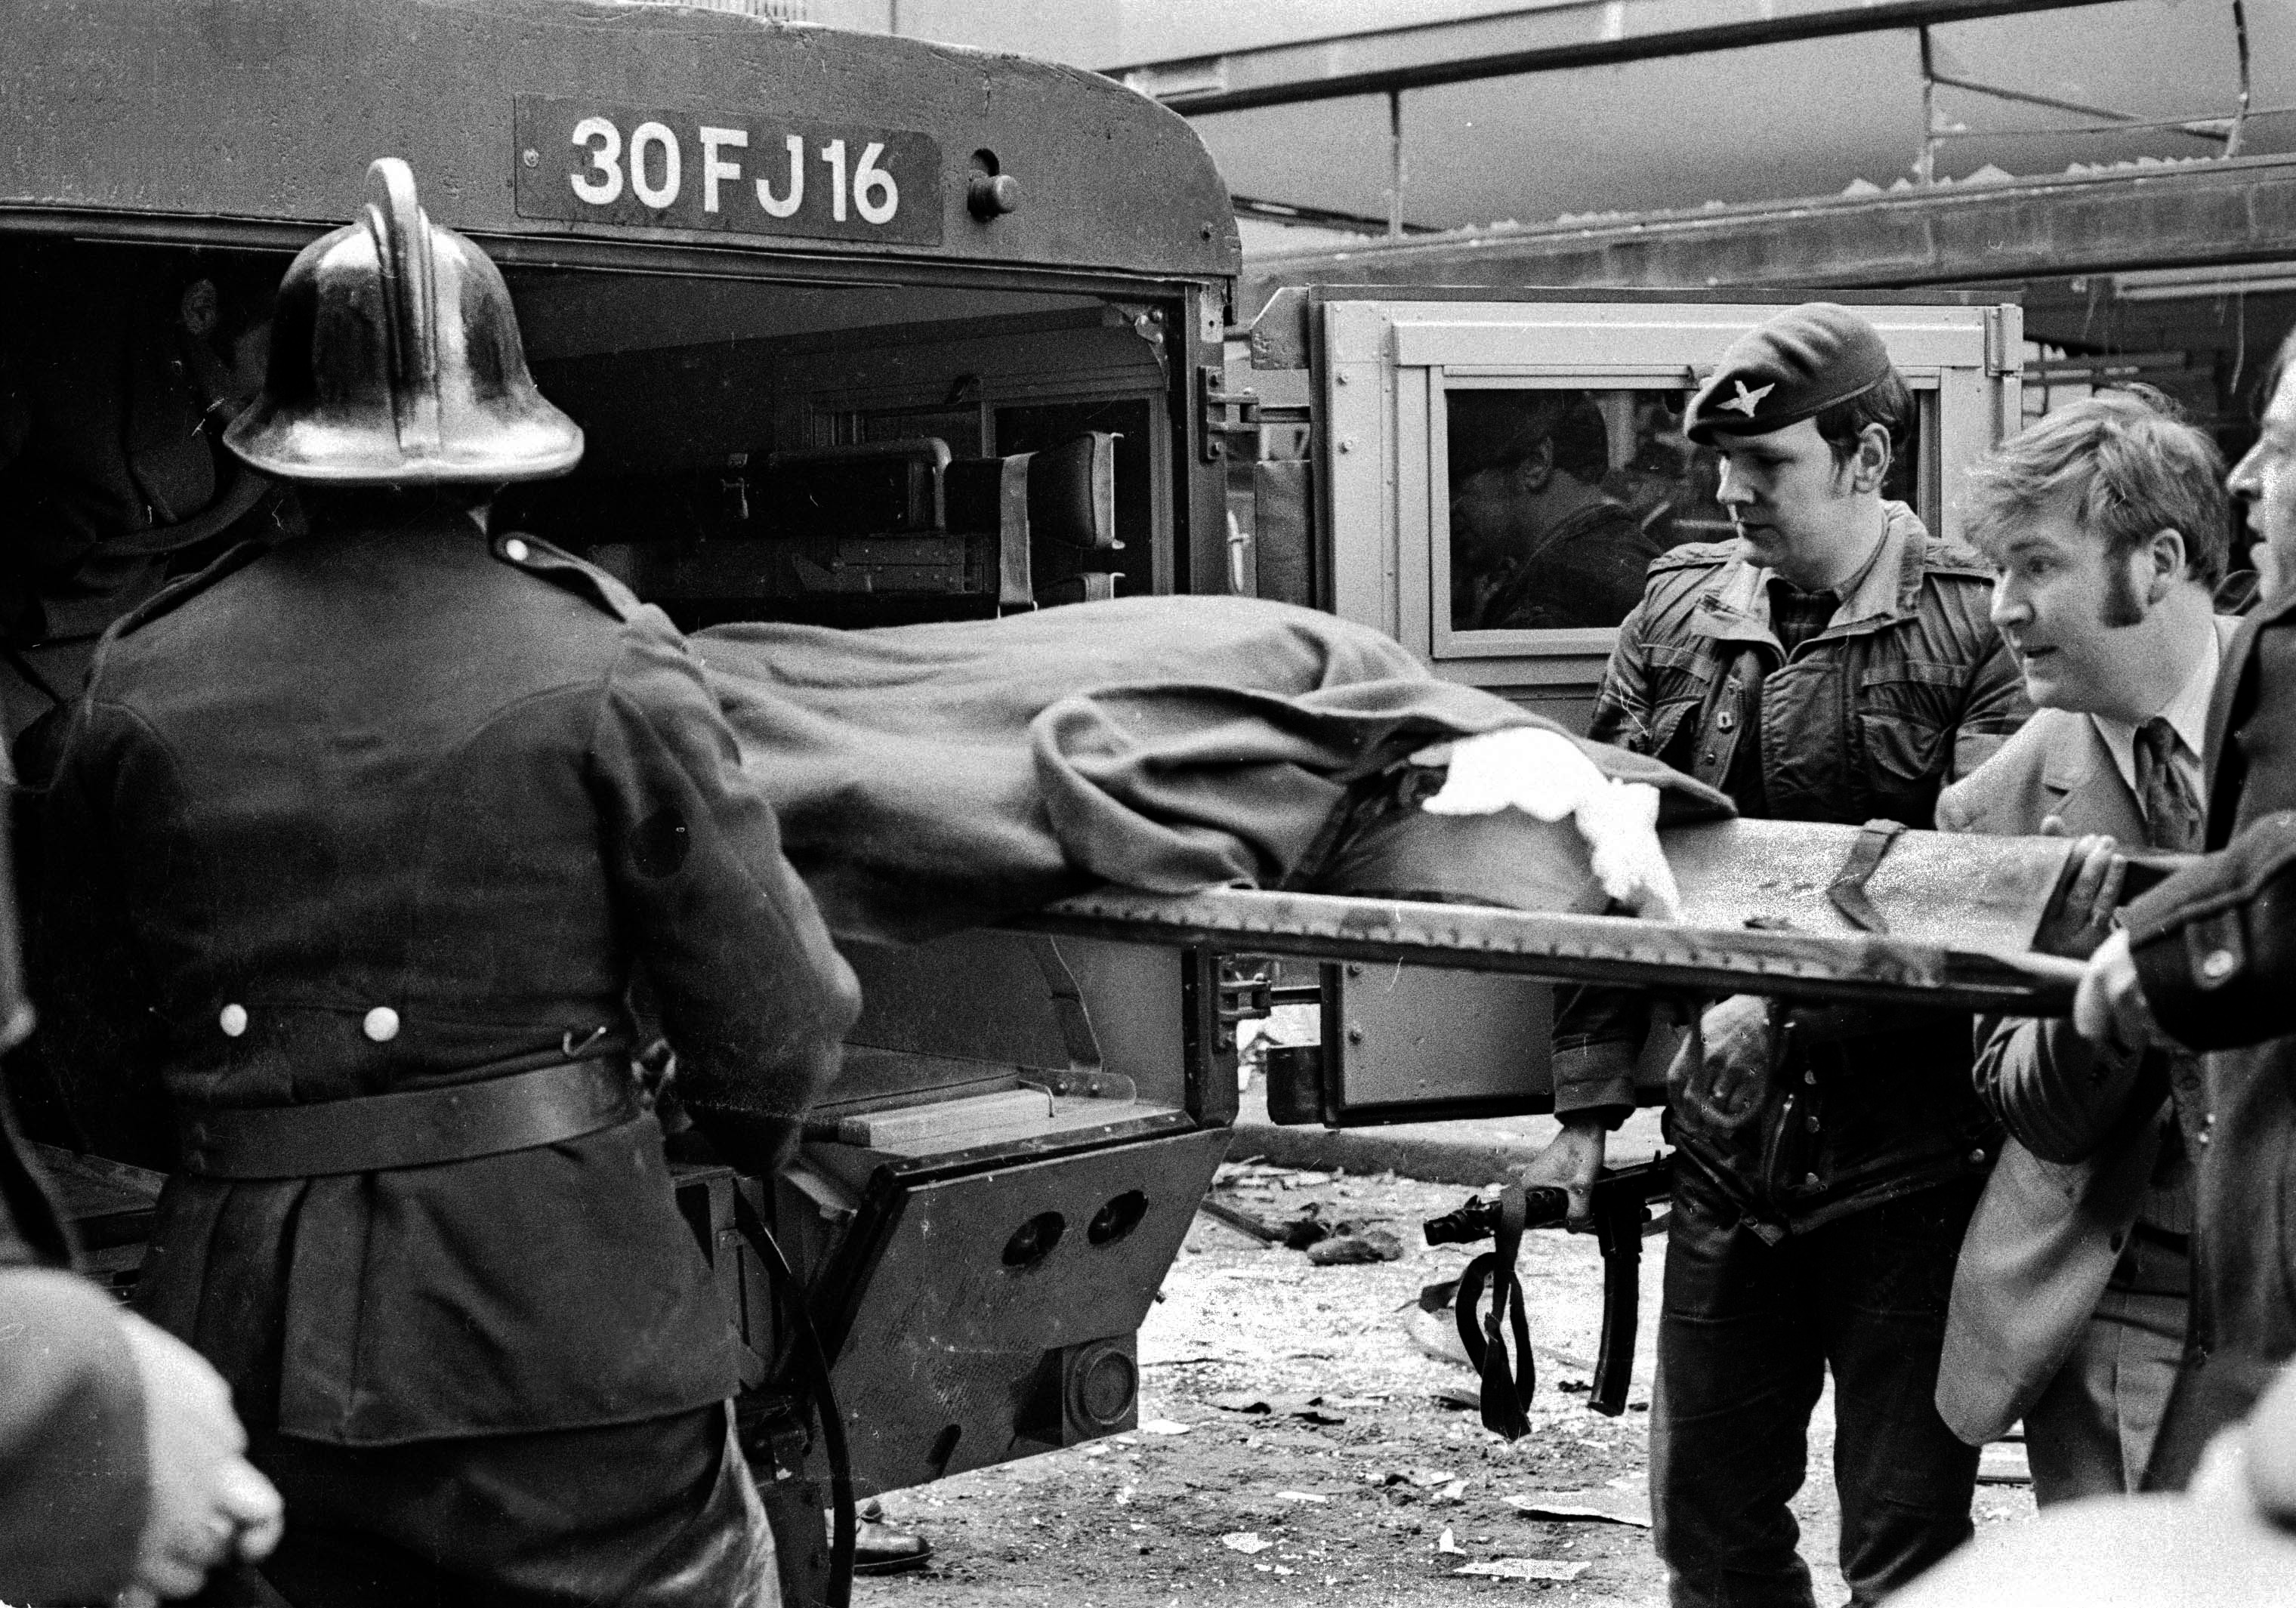 Explosion in Donegall Street, Belfast, in which 7 people died and 130 were injured. Four of the dead were bin men. No warning bomb was in a car. One of injured is taken away in a British Army ambulance. (Victor Patterson)